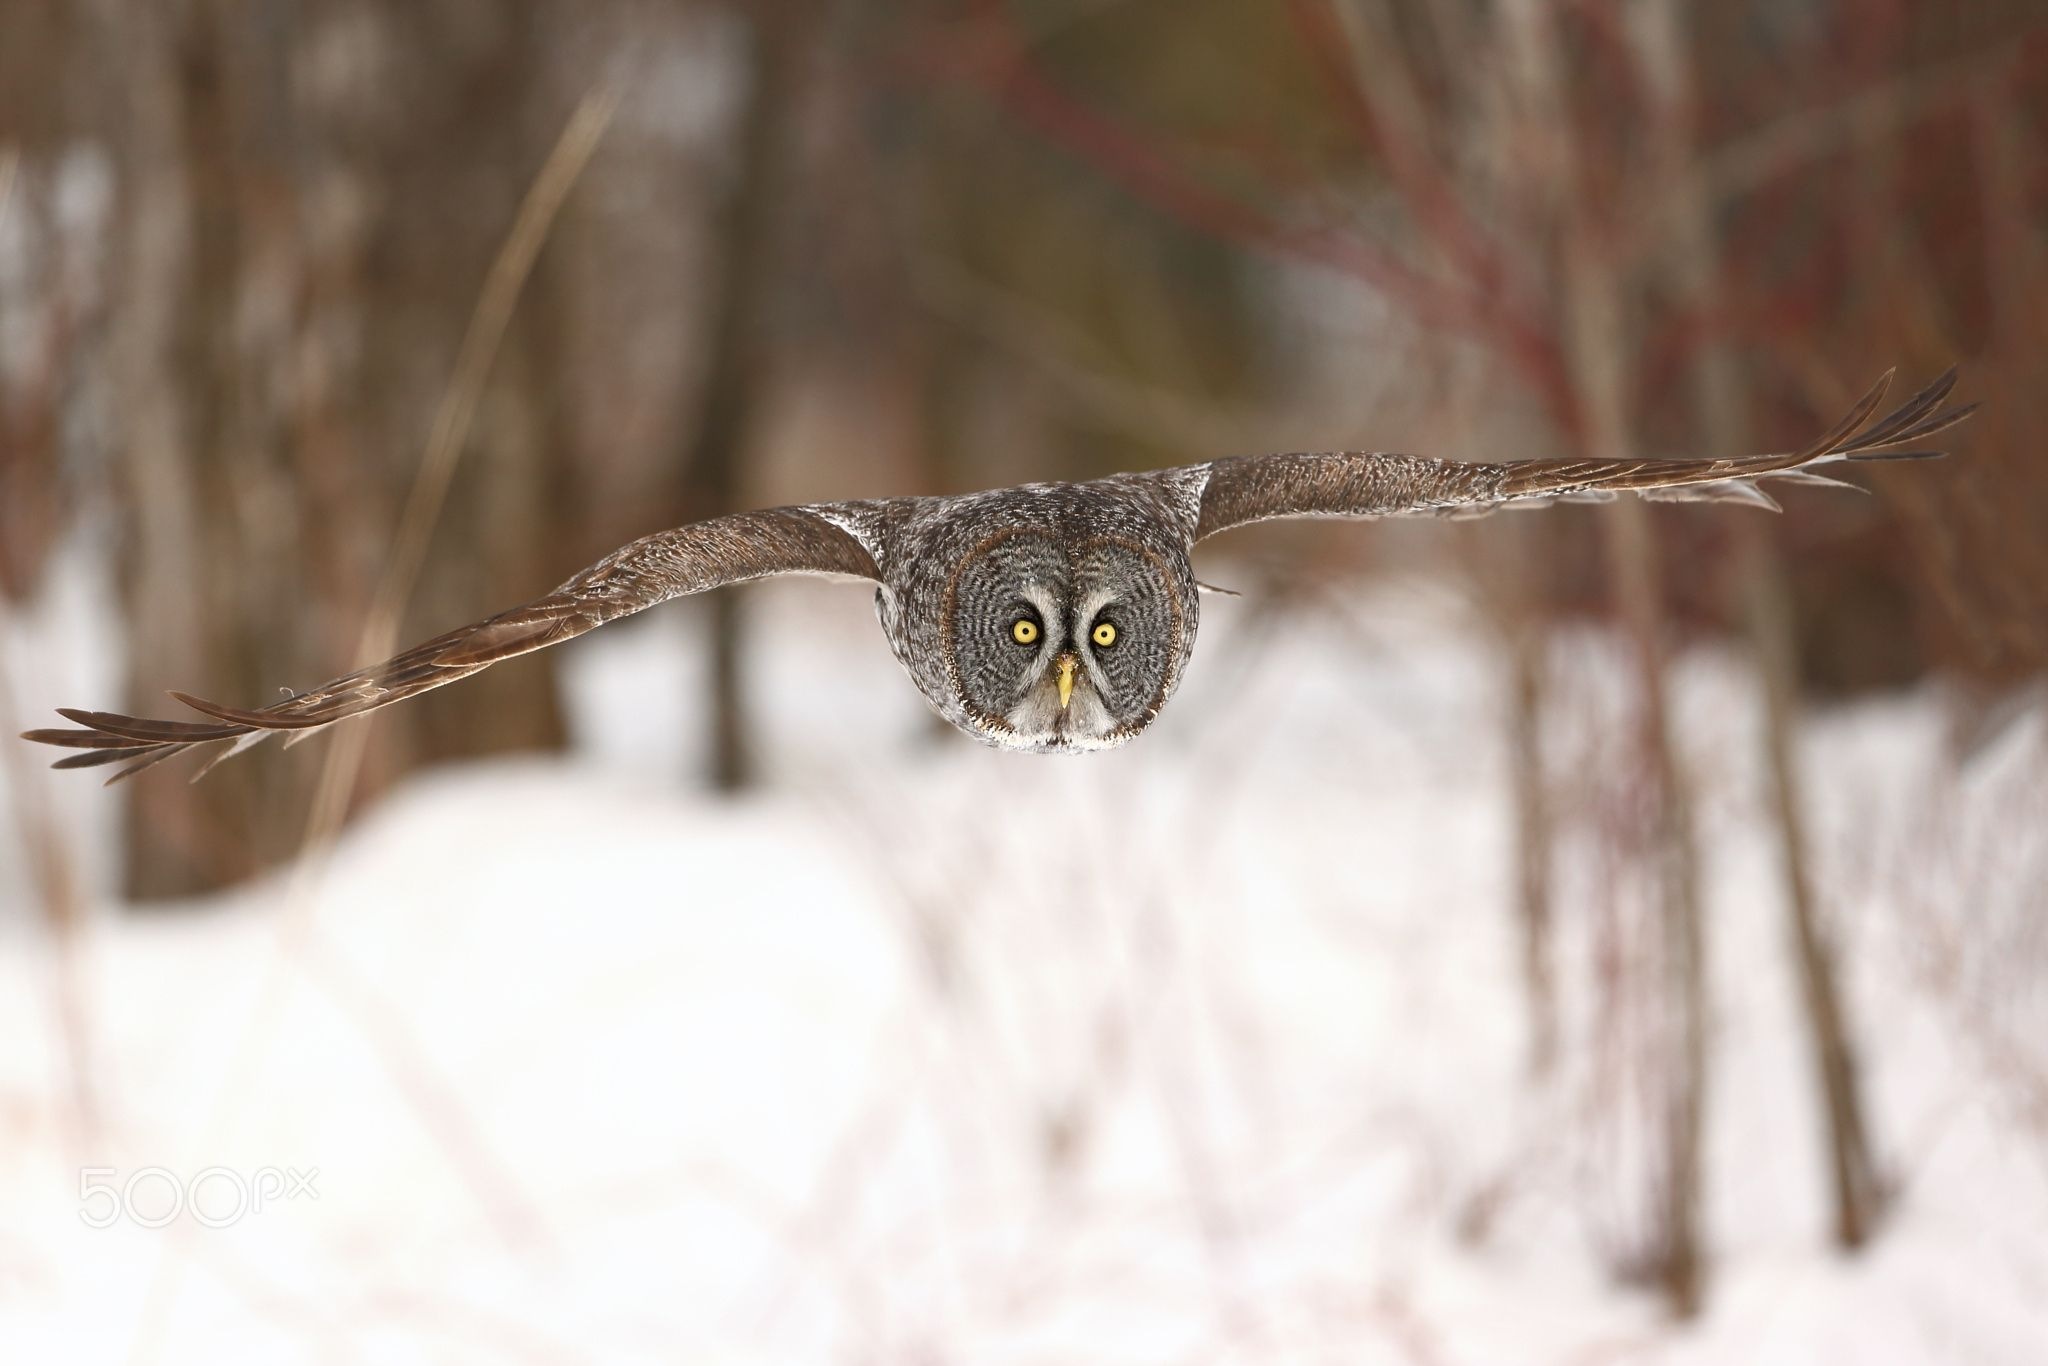 Camouflage by Denis Dumoulin on 500px